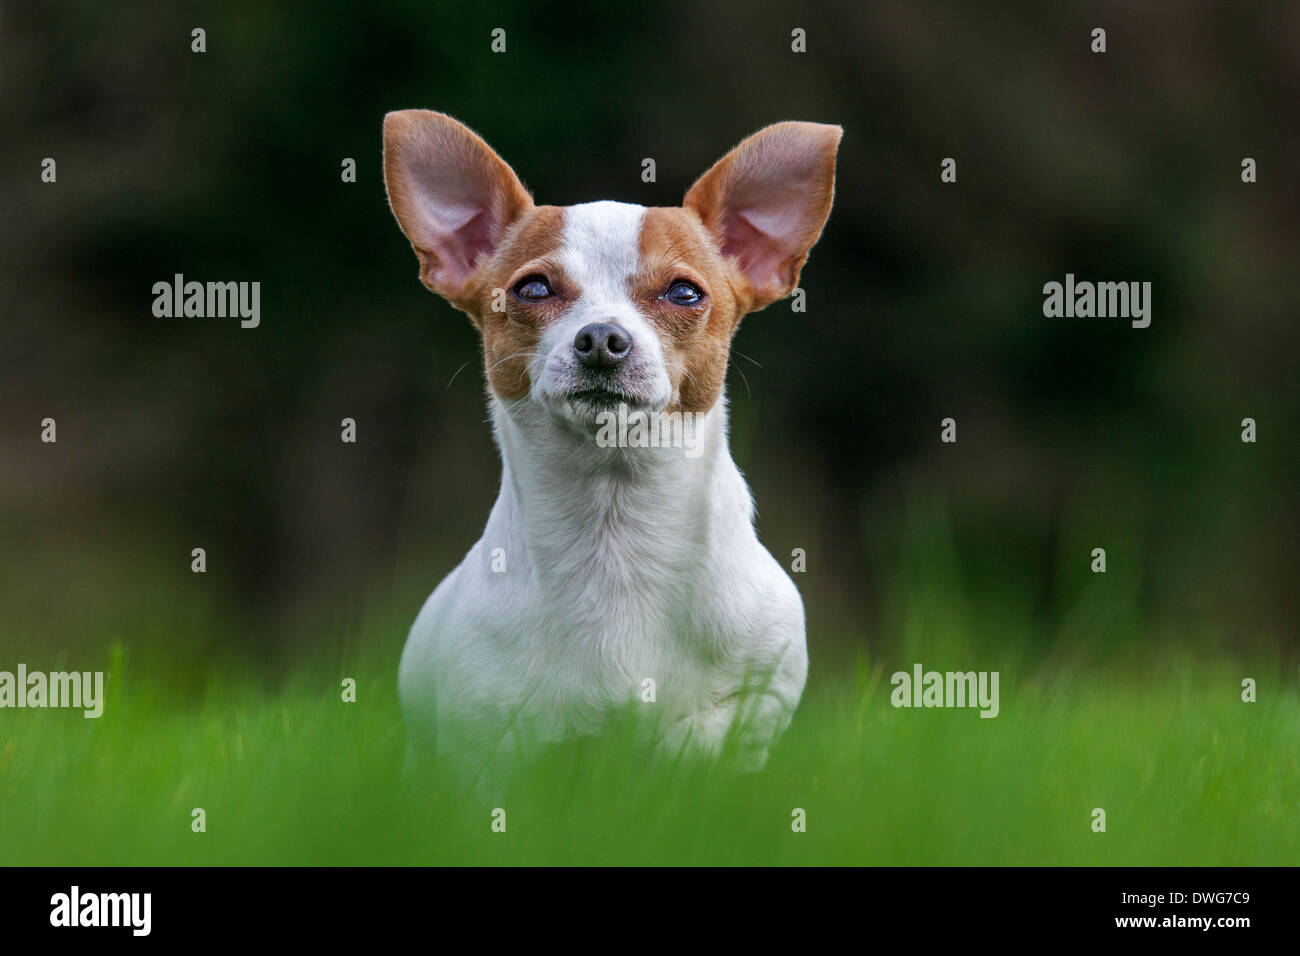 Short-haired Chihuahua in garden - Stock Image